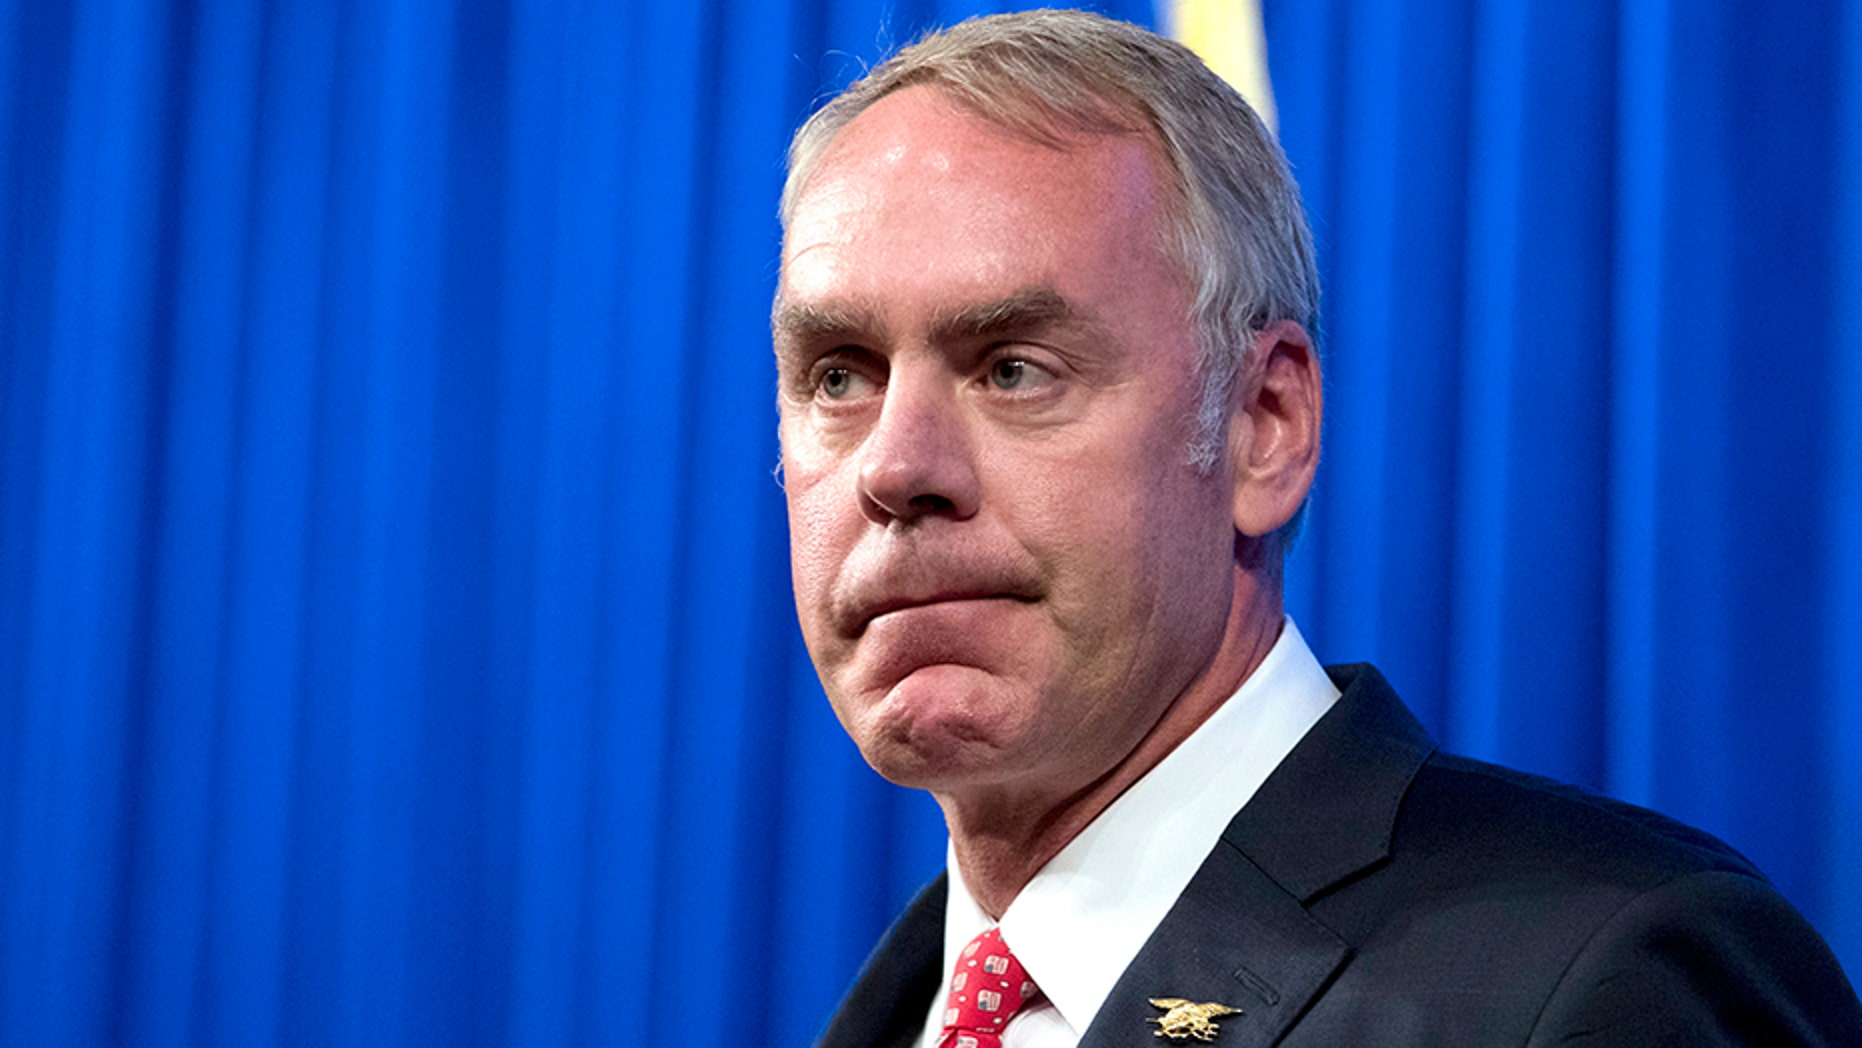 FILE - In this Sept. 29, 2017, file photo, Interior Secretary Ryan Zinke speaks about the Trump Administration's energy policy at the Heritage Foundation in Washington.